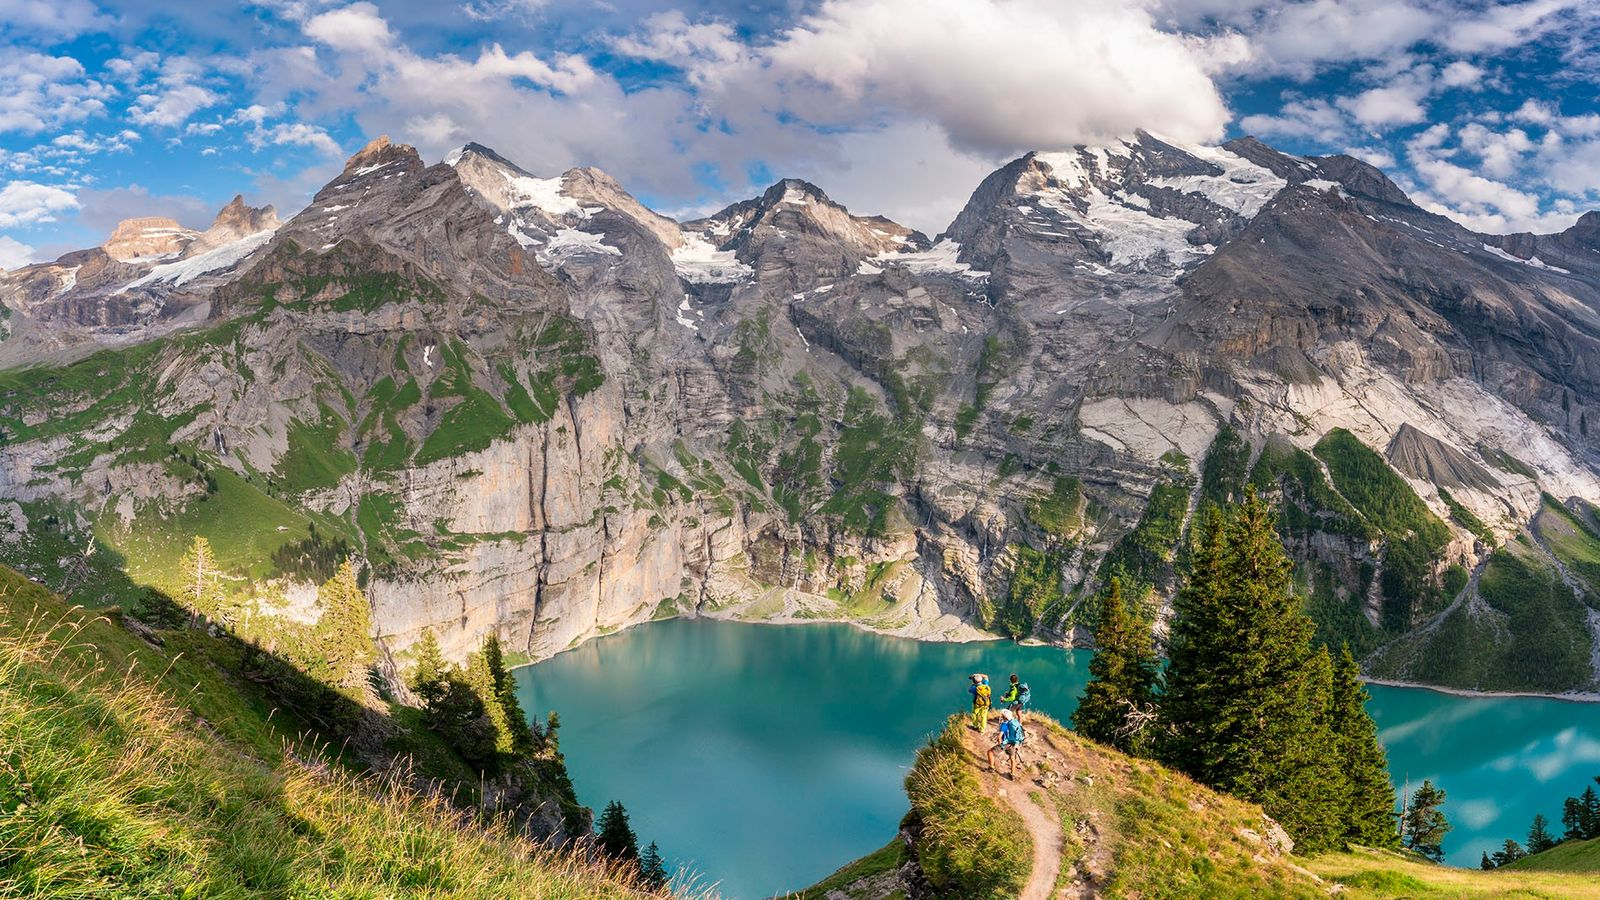 When imagining Switzerland, enormous, snow-covered mountain ranges likely come to mind, and among them the Swiss ...